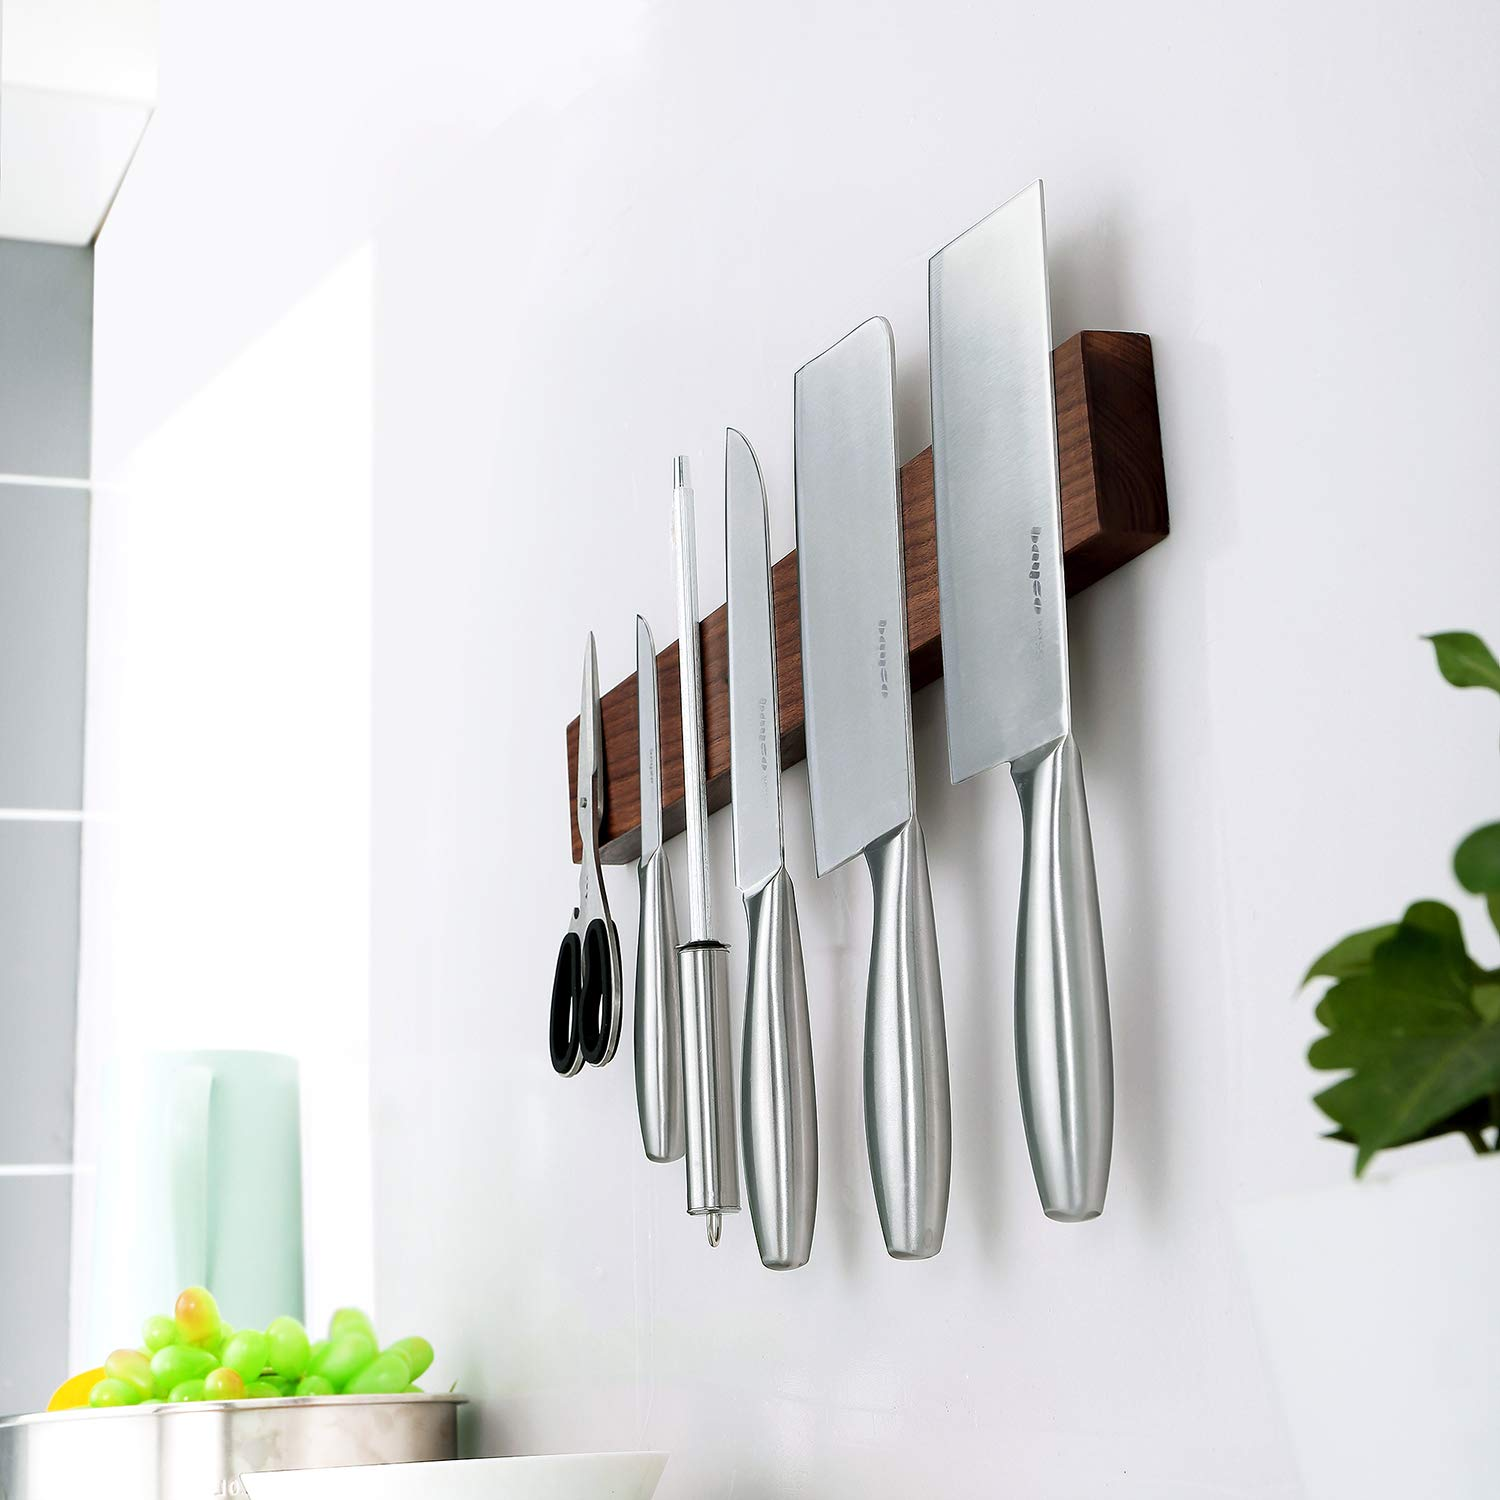 Walnut Magnetic Knife Holder 18 Inch - Wall Mount Wooden Knife Strip, Rack, Bar With Double Row Powerful Magnets, Space-Saving Utensil Organizer by KitchenShark (Image #7)